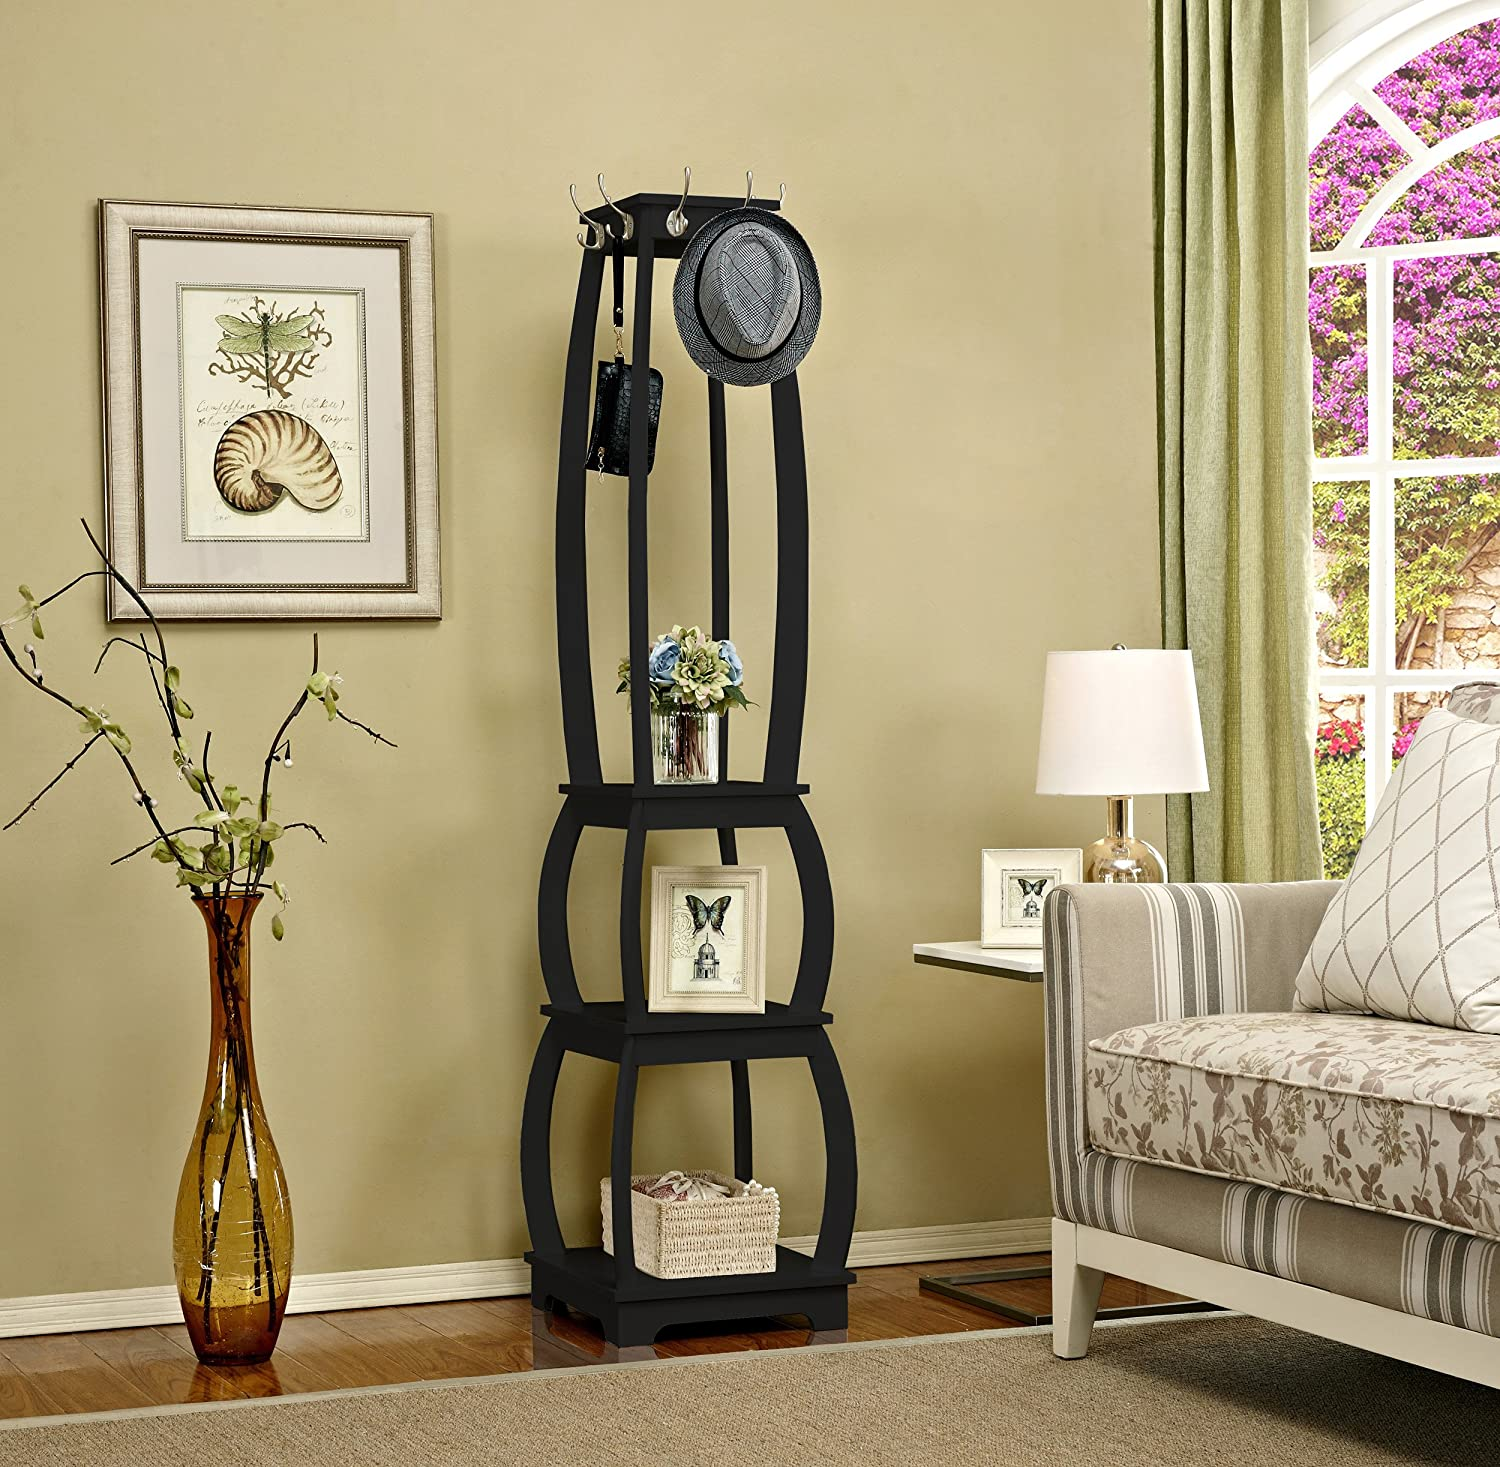 Mixcept Wooden Coat Rack Stand With 8 Hooks Entryway Hall Tree  Multi-purpose Shelves With 3 Tier Storage Shelves, Black